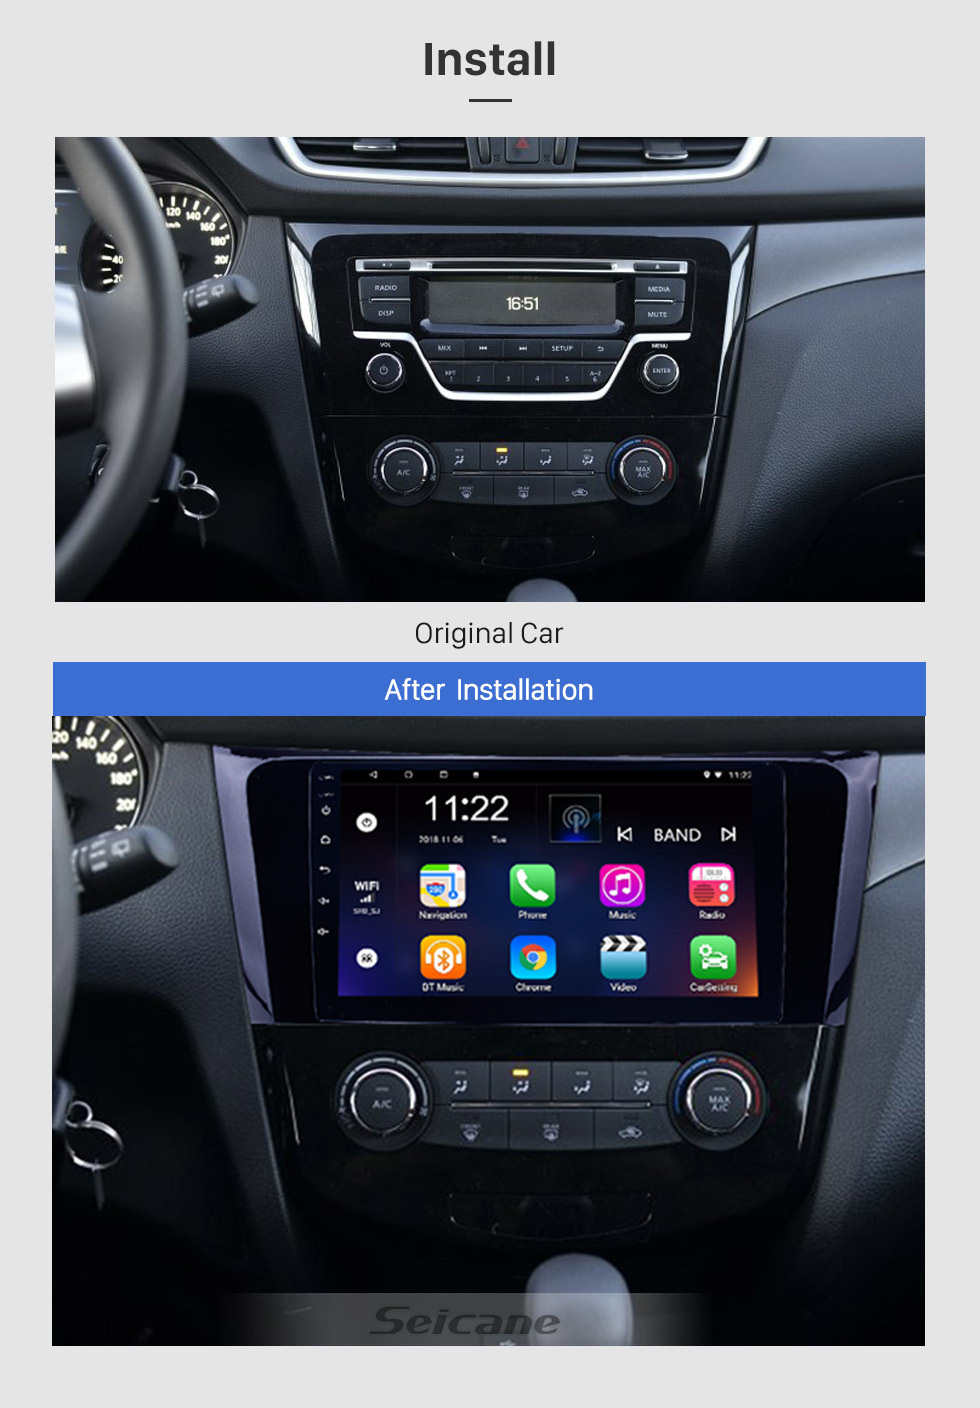 Seicane 9 inch Android 10.0 GPS Radio Bluetooth Multimedia Navigation System for 2013 2014 Nissan X-Trail with 3G WiFi Mirror Link Touch Screen OBD2 Steering Wheel Control Auto A/V USB SD